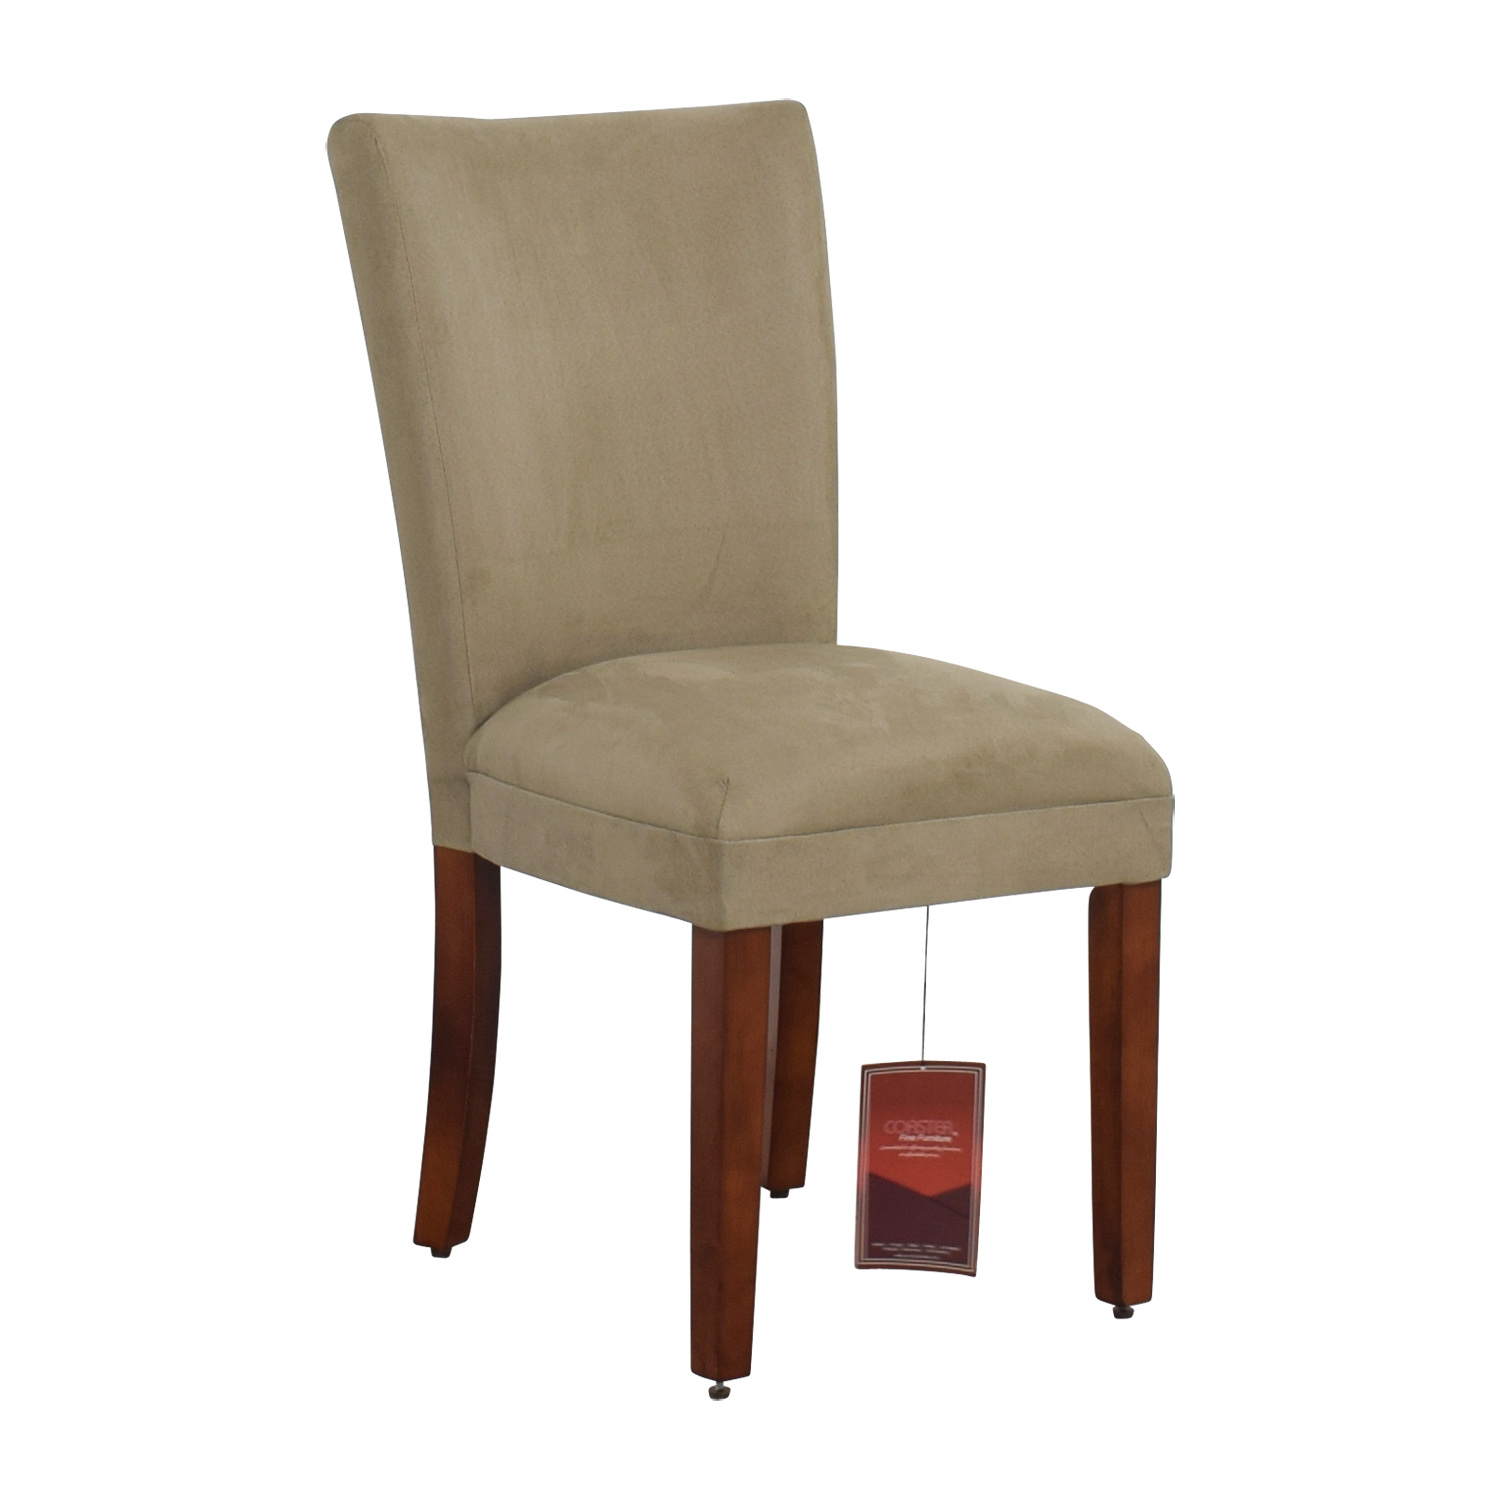 Coaster Coaster High Back Parsons Chair in Taupe Microfiber Fabric dimensions